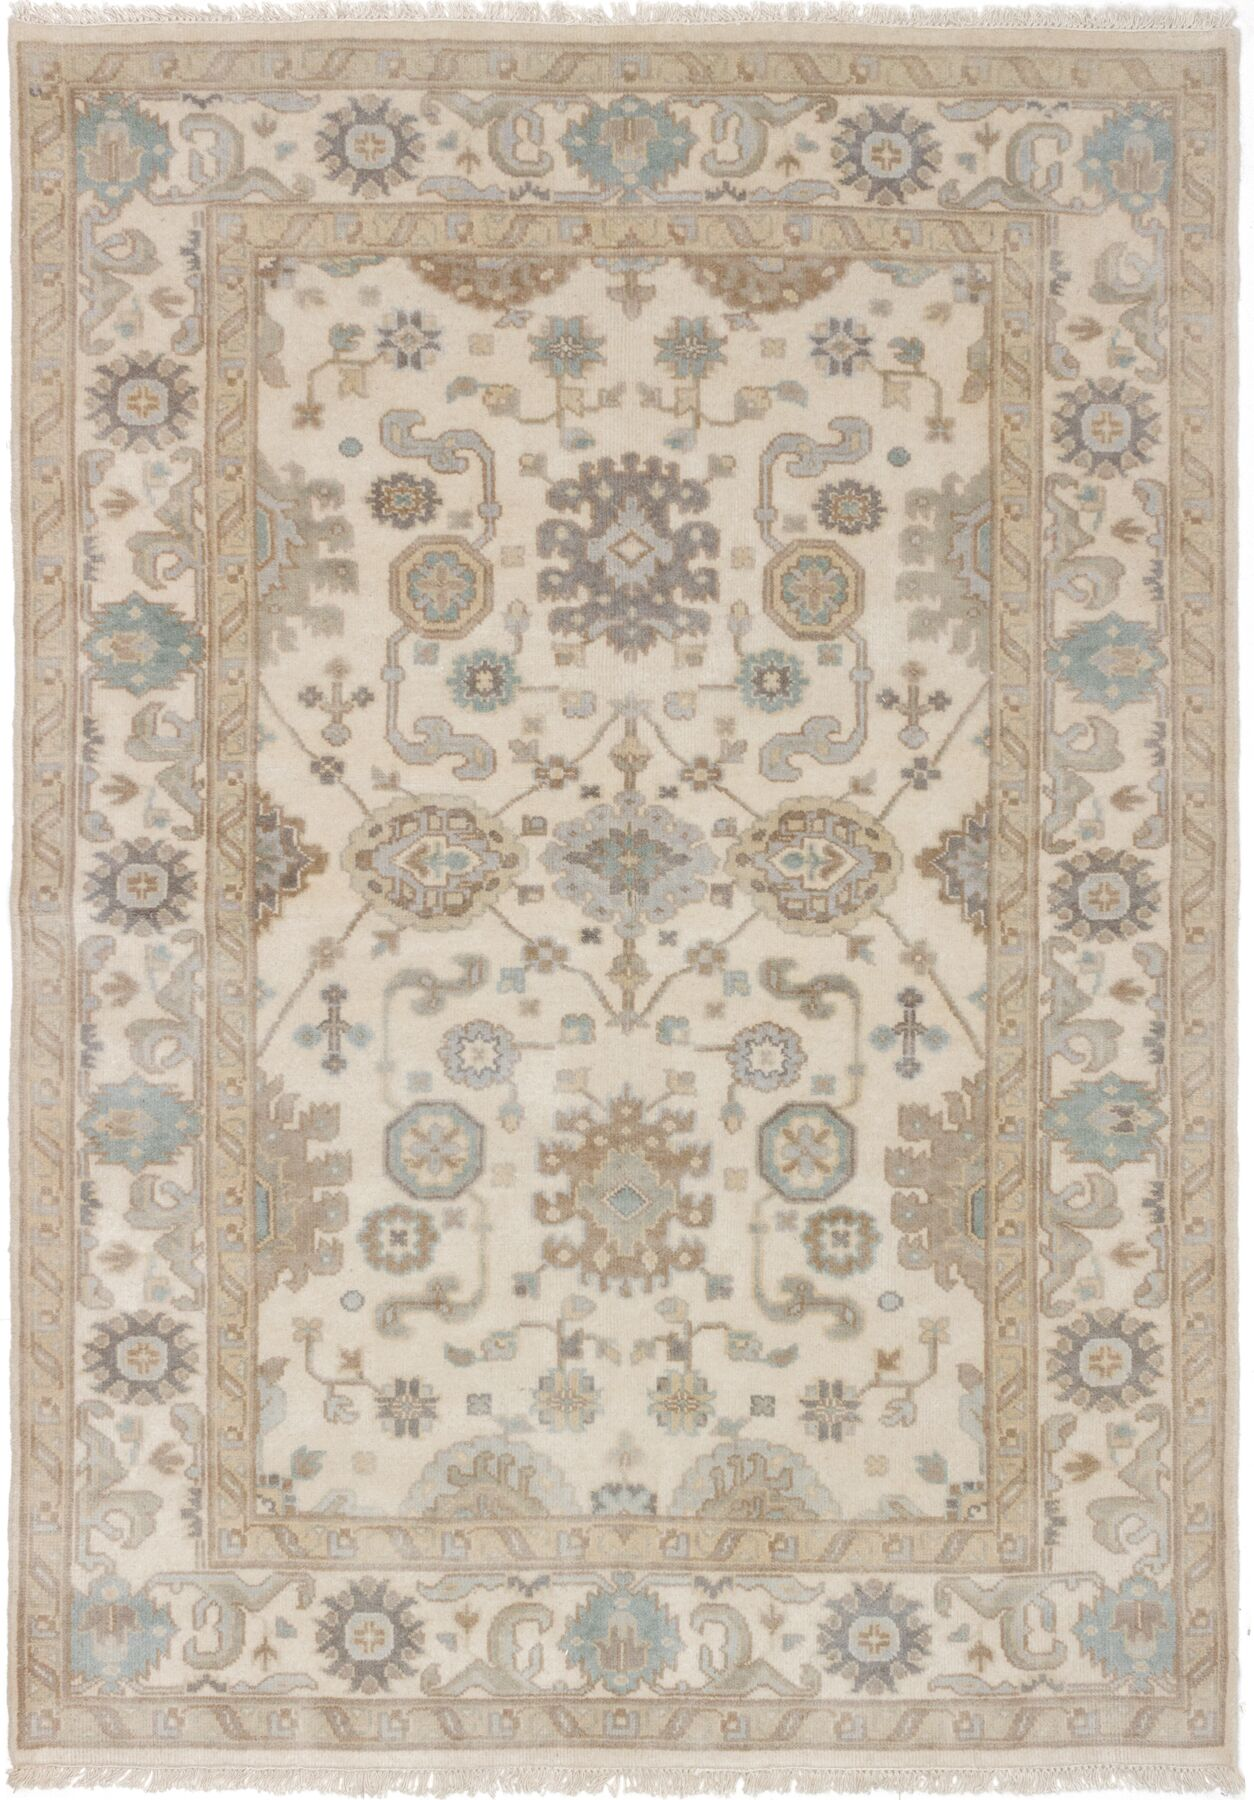 One-of-a-Kind Doggett Hand-Knotted Cream Area Rug Rug Size: 5'9